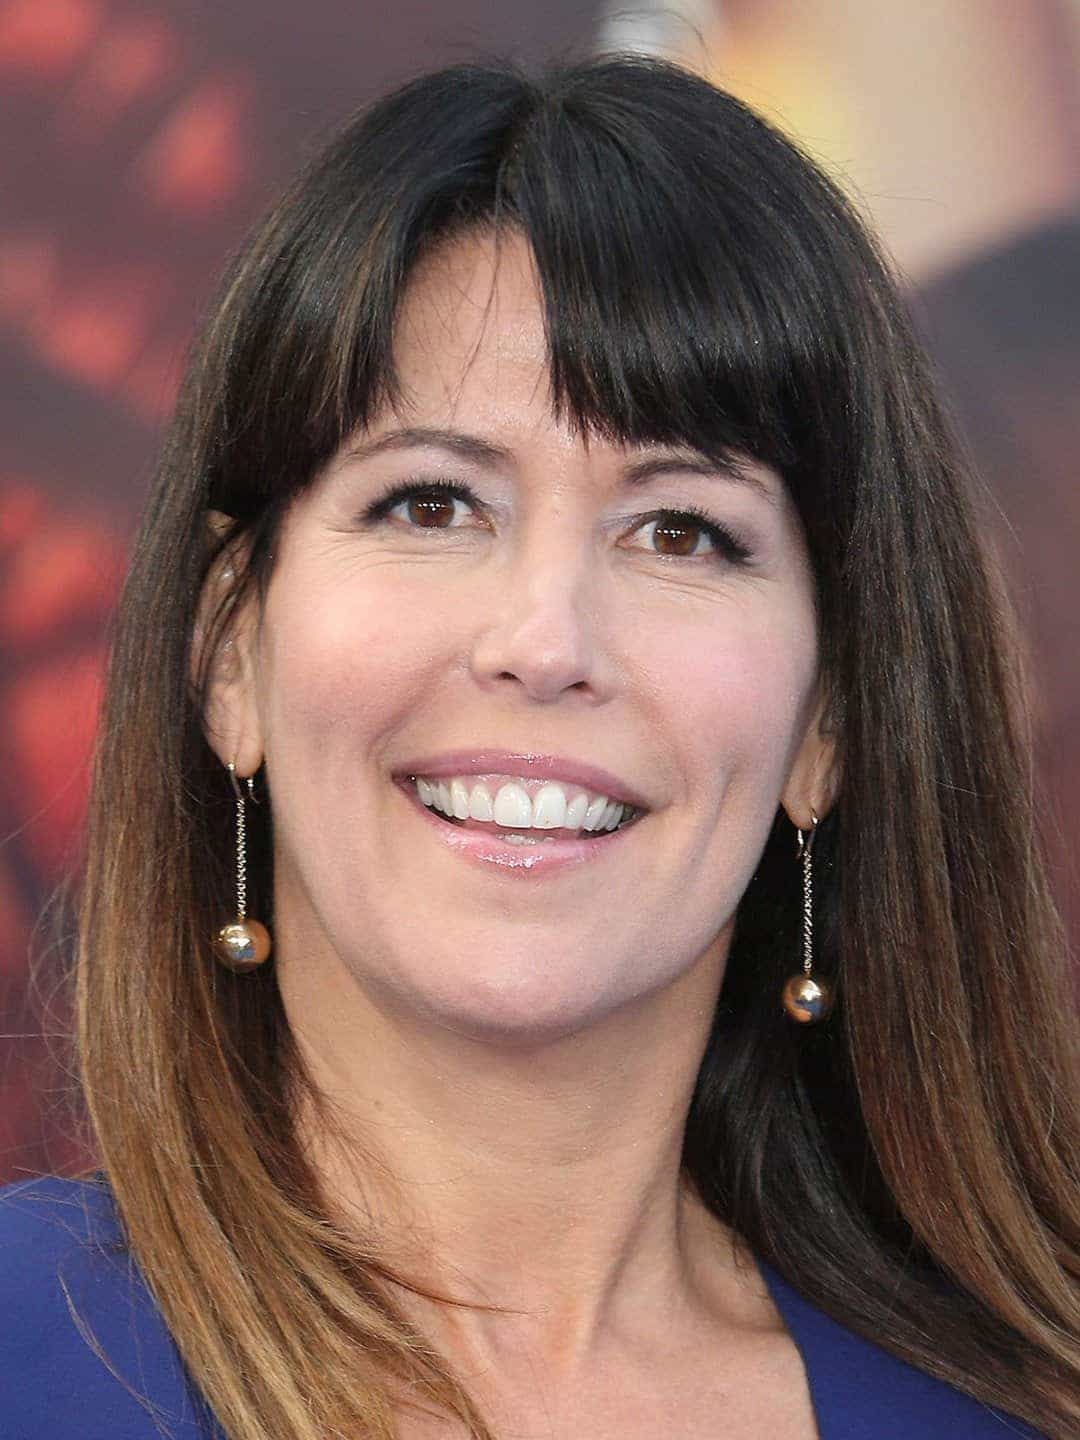 Patty Jenkins directing Star wars movie